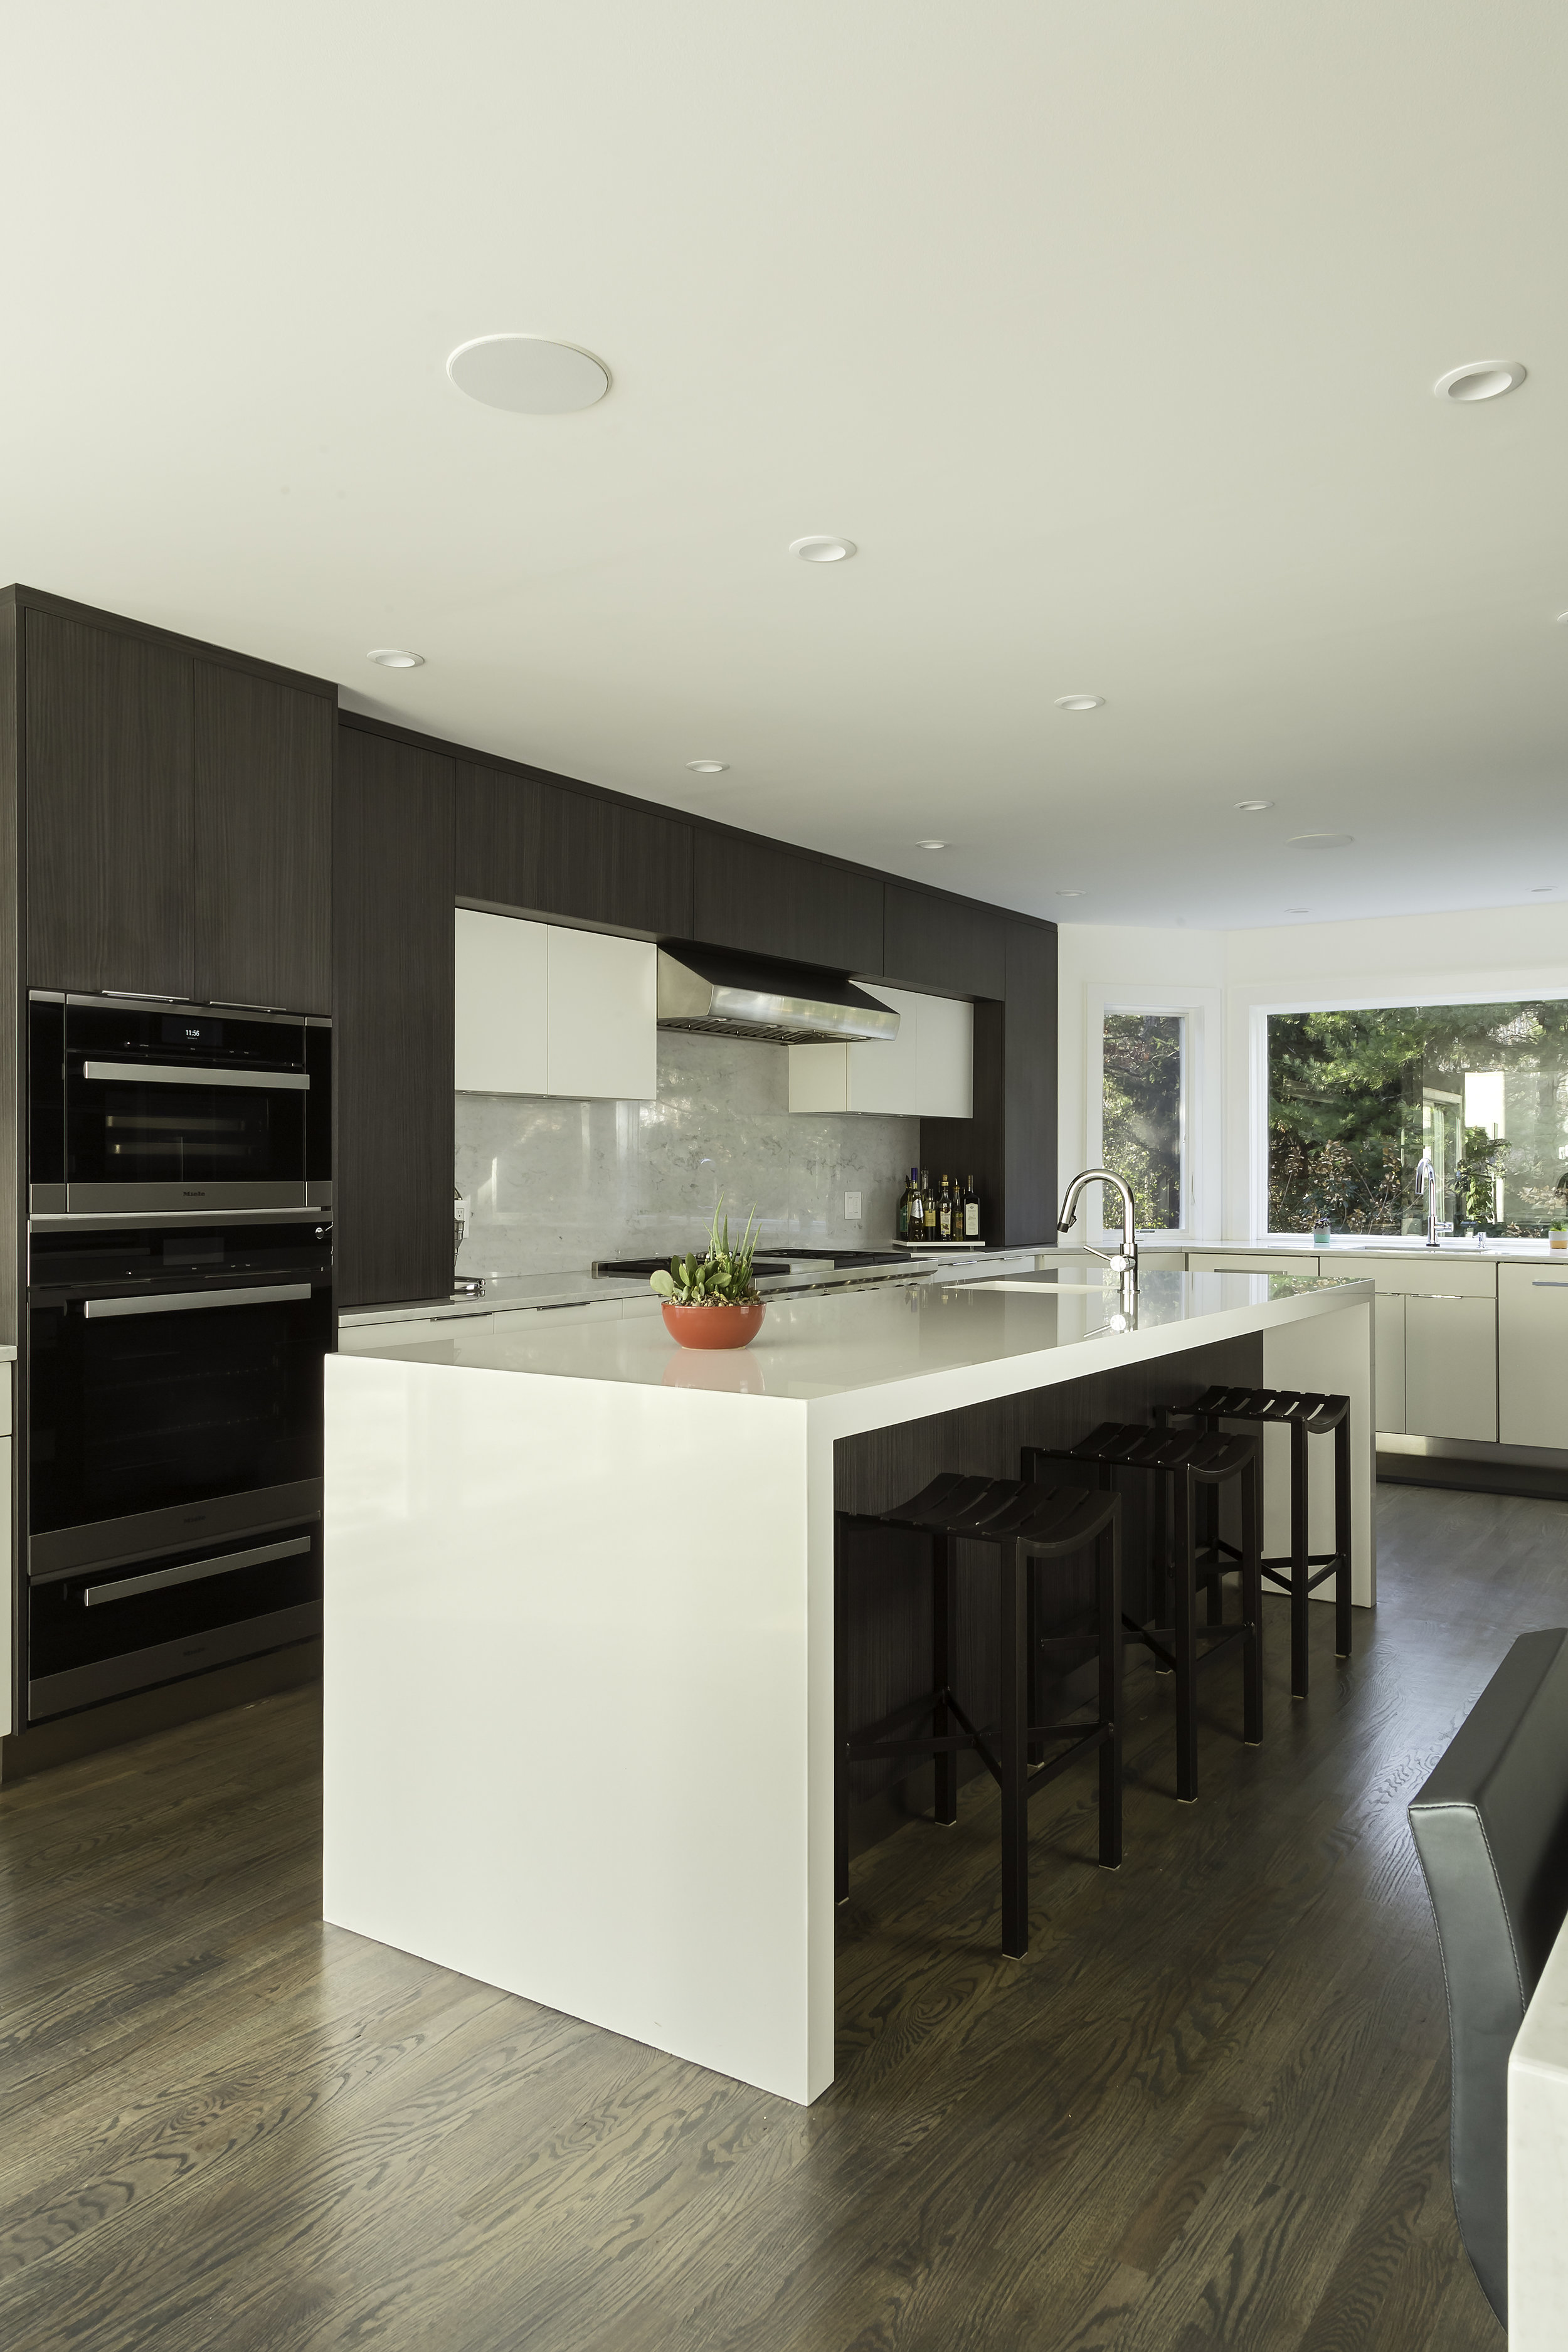 Contemporary style kitchen with spacious floor